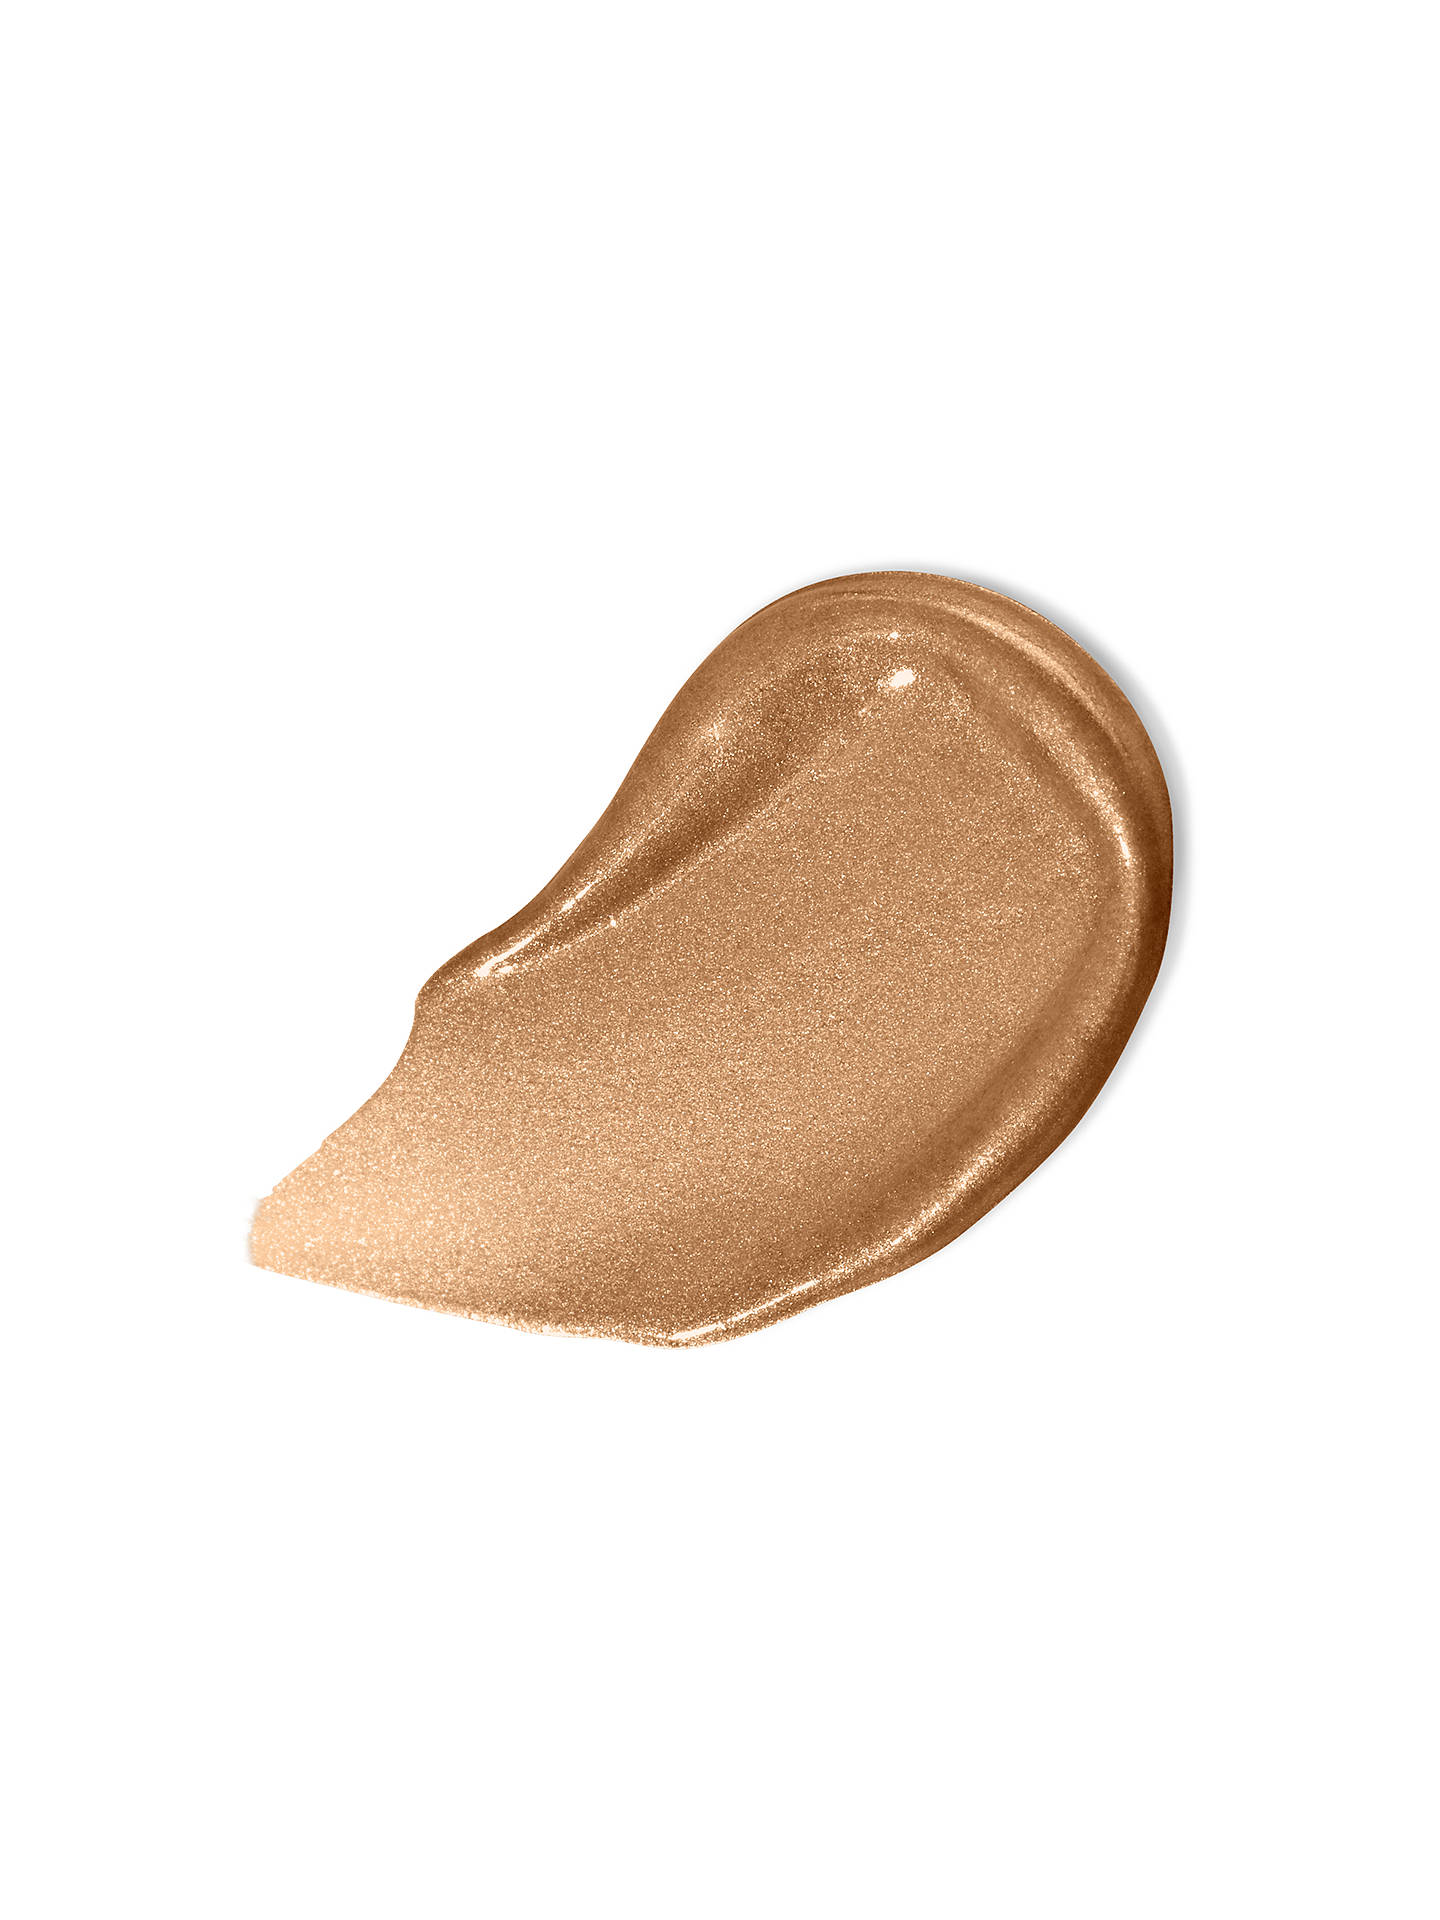 BuyBECCA Shimmering Skin Perfector™ Liquid Highlighter, Topaz Online at johnlewis.com